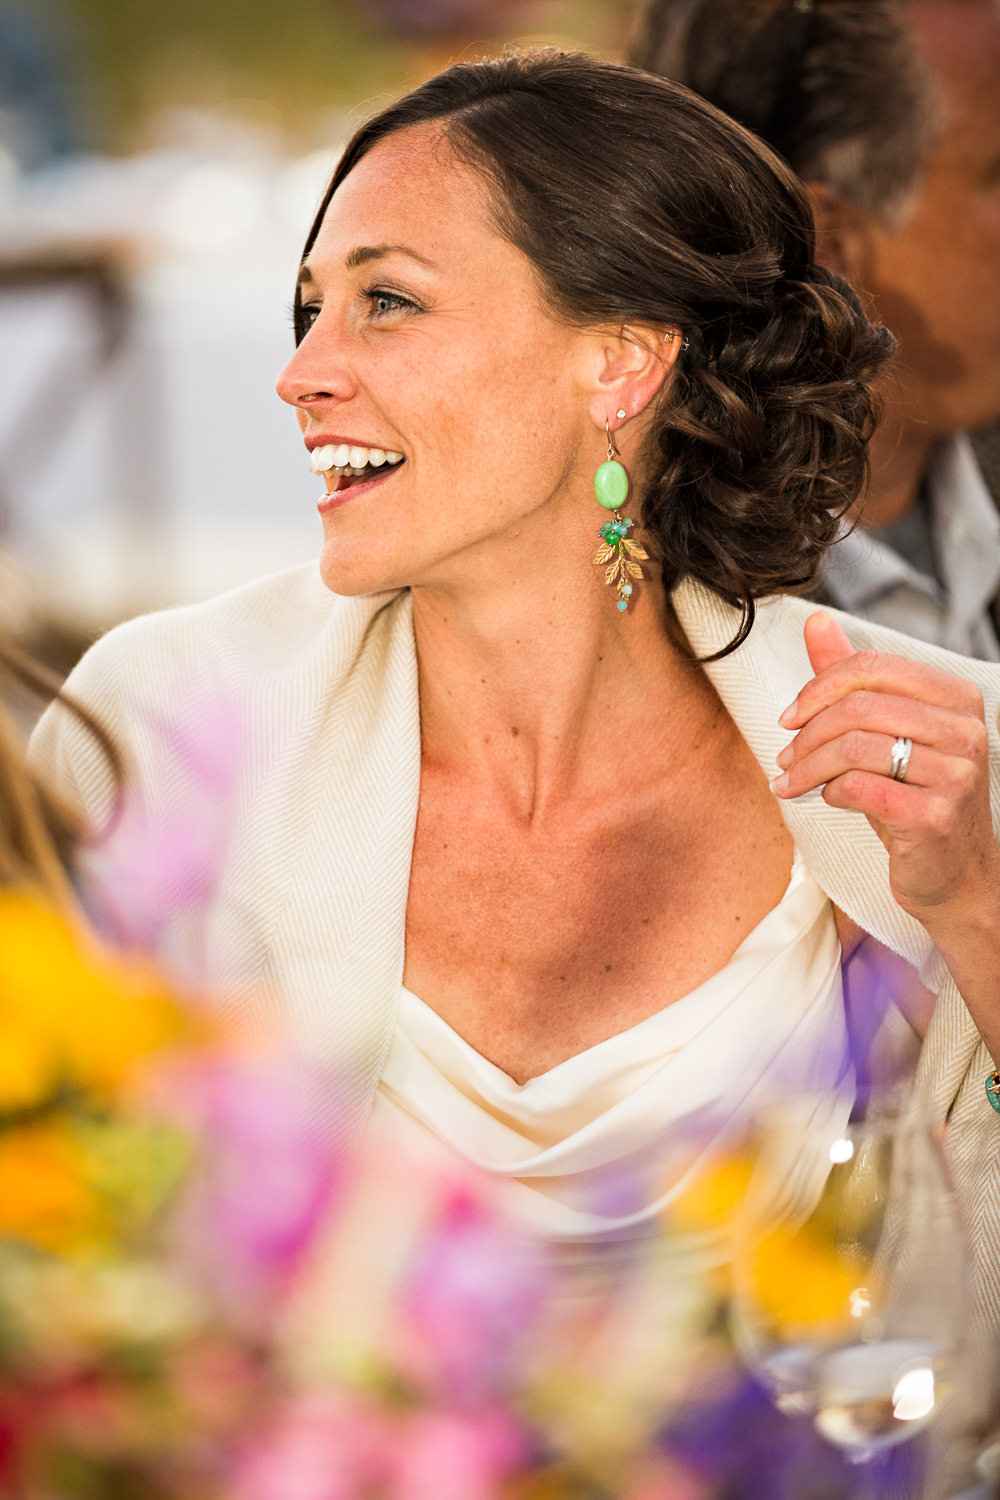 mcleod-montana-wedding-bride-laughs-during-toasts.jpg